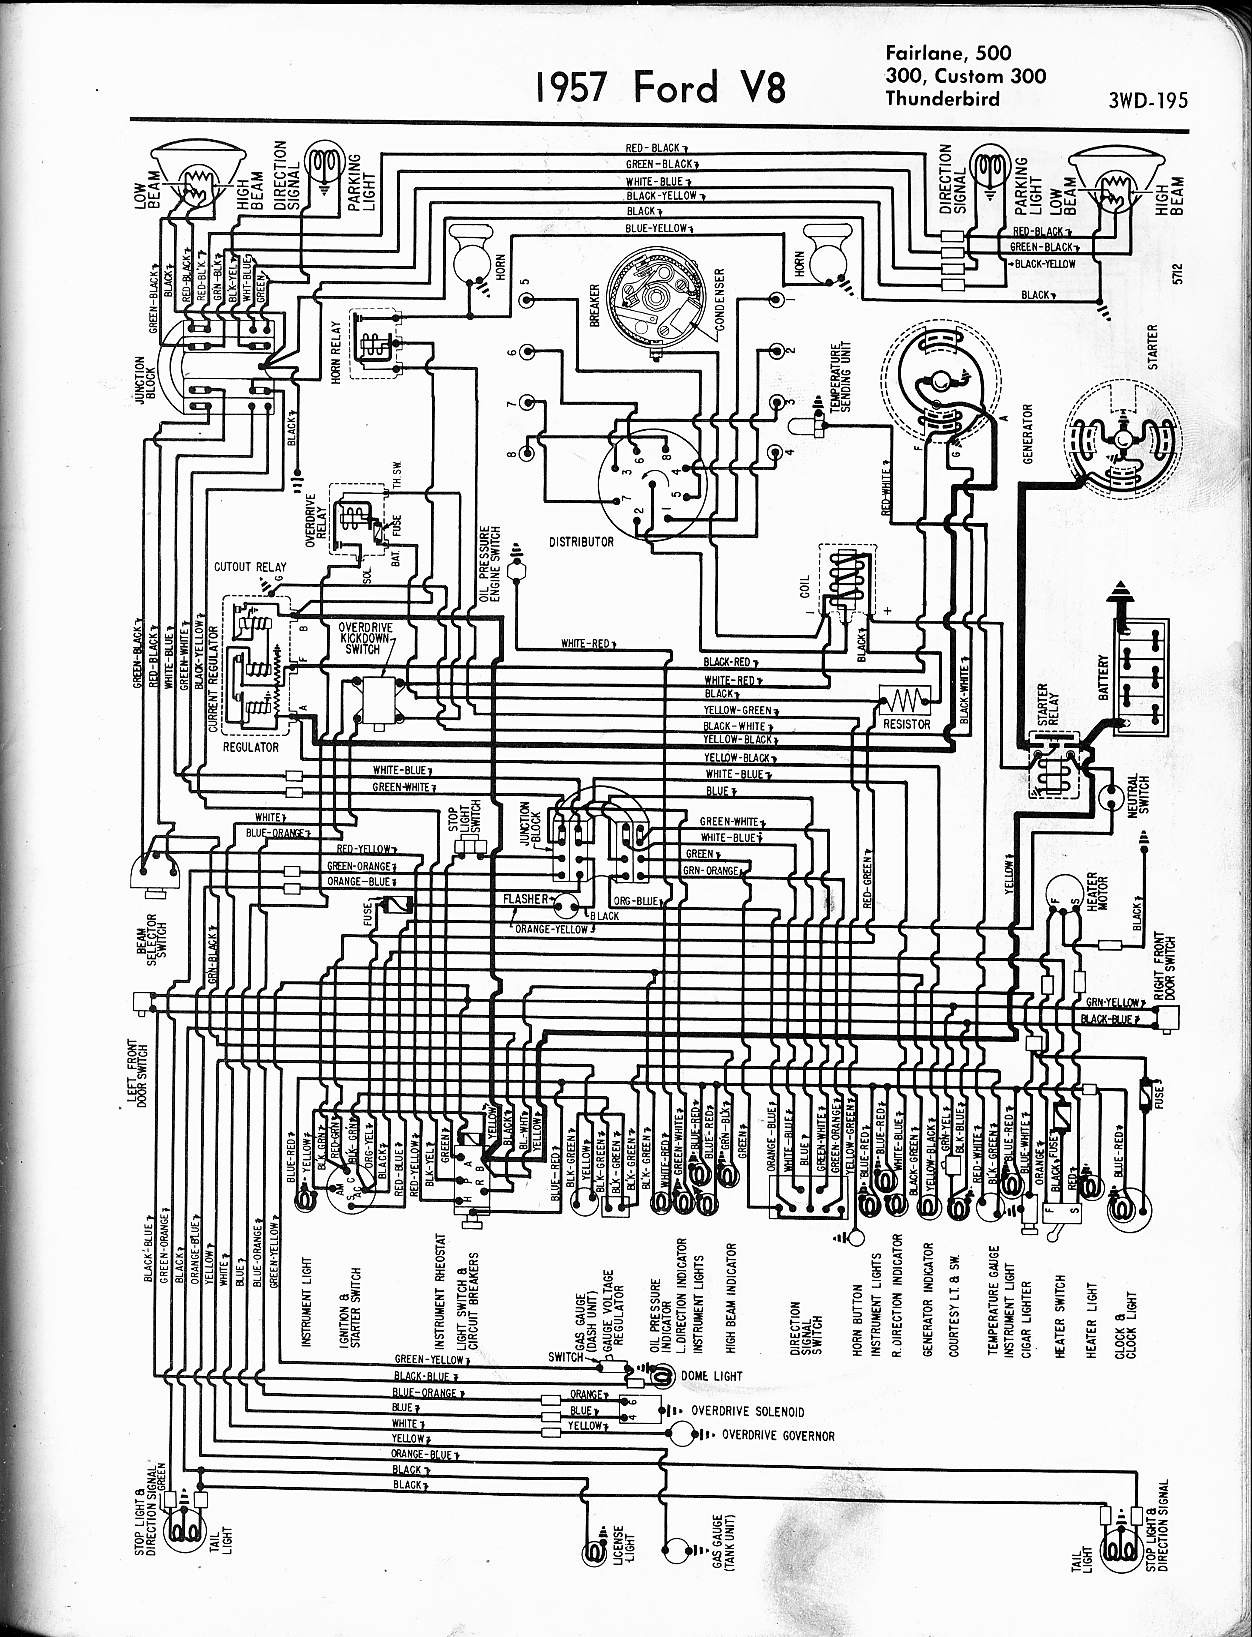 65 Ford Truck Wiring Diagram Library 4r100 Transmission Ignition 57 Diagrams Of Beautiful